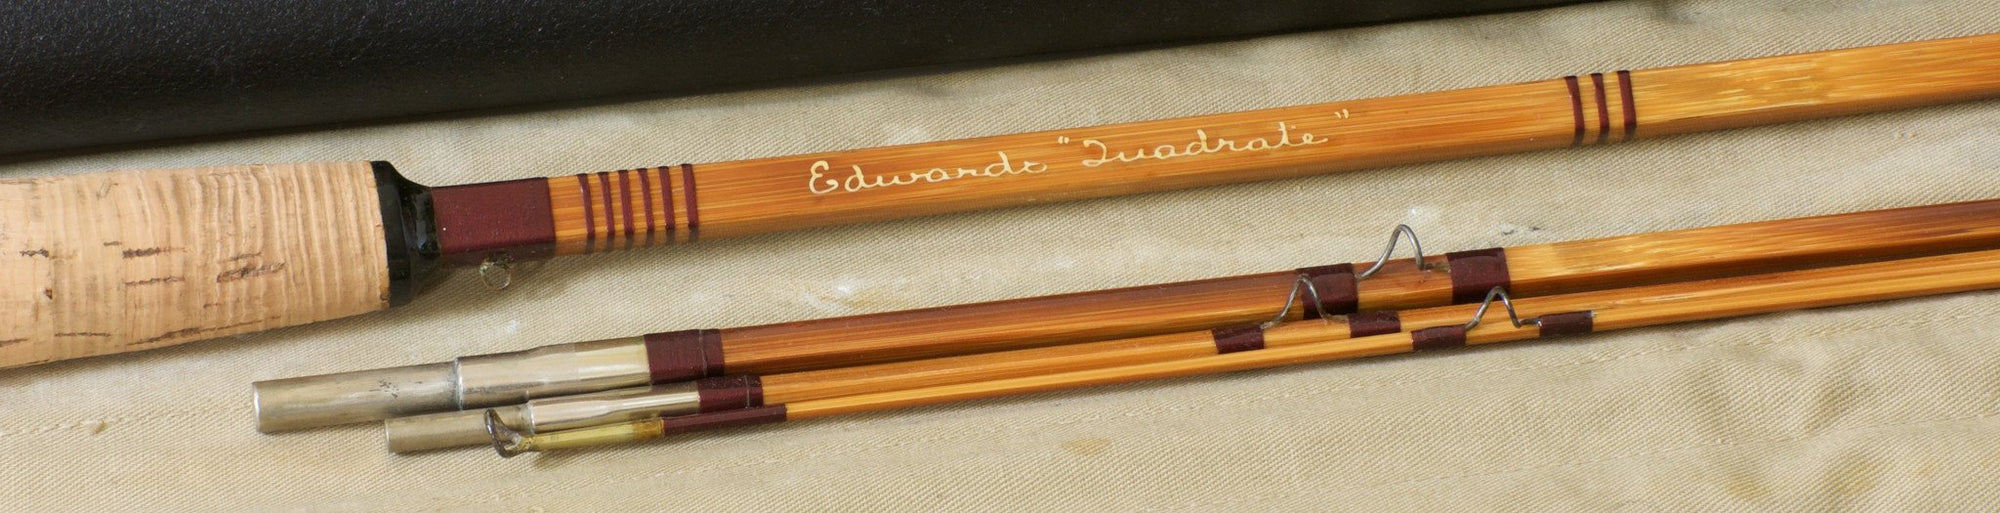 "Edwards Quadrate Model #35 8'6"" Bamboo Rod"